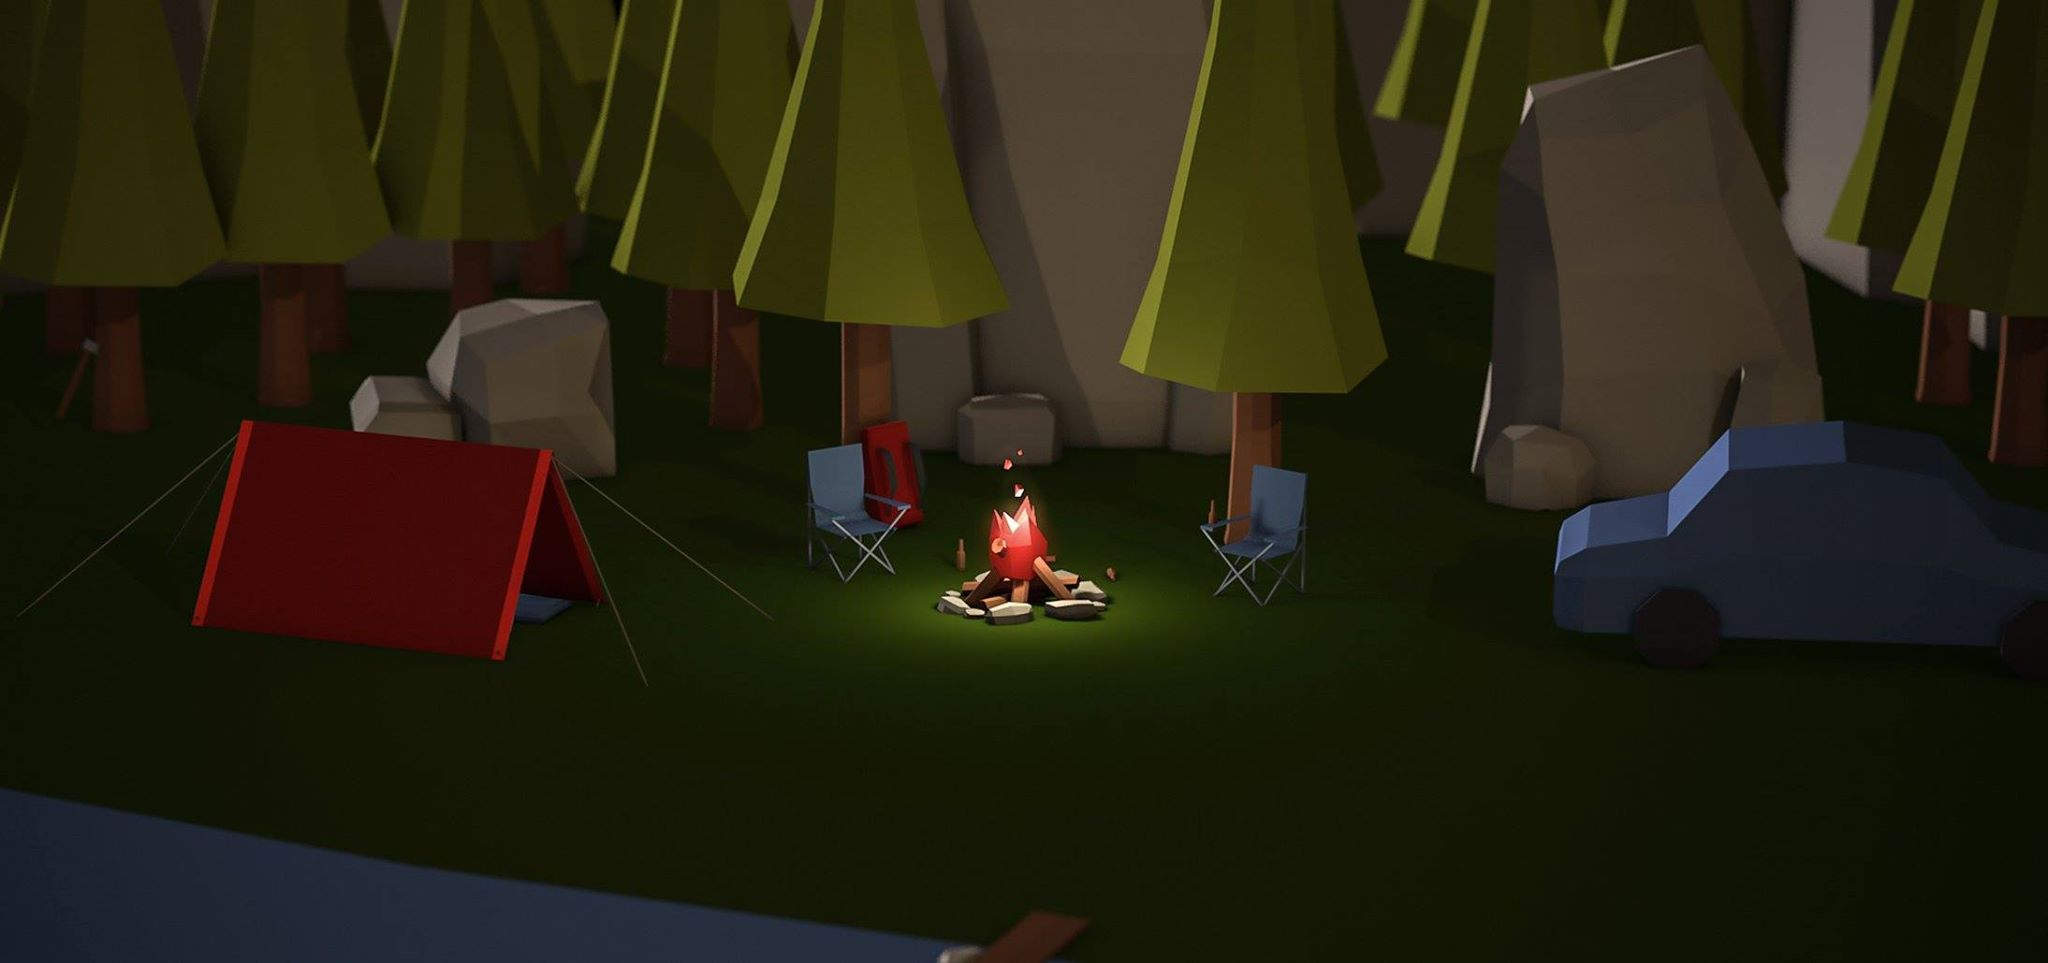 It all starts one night out at the campsite.